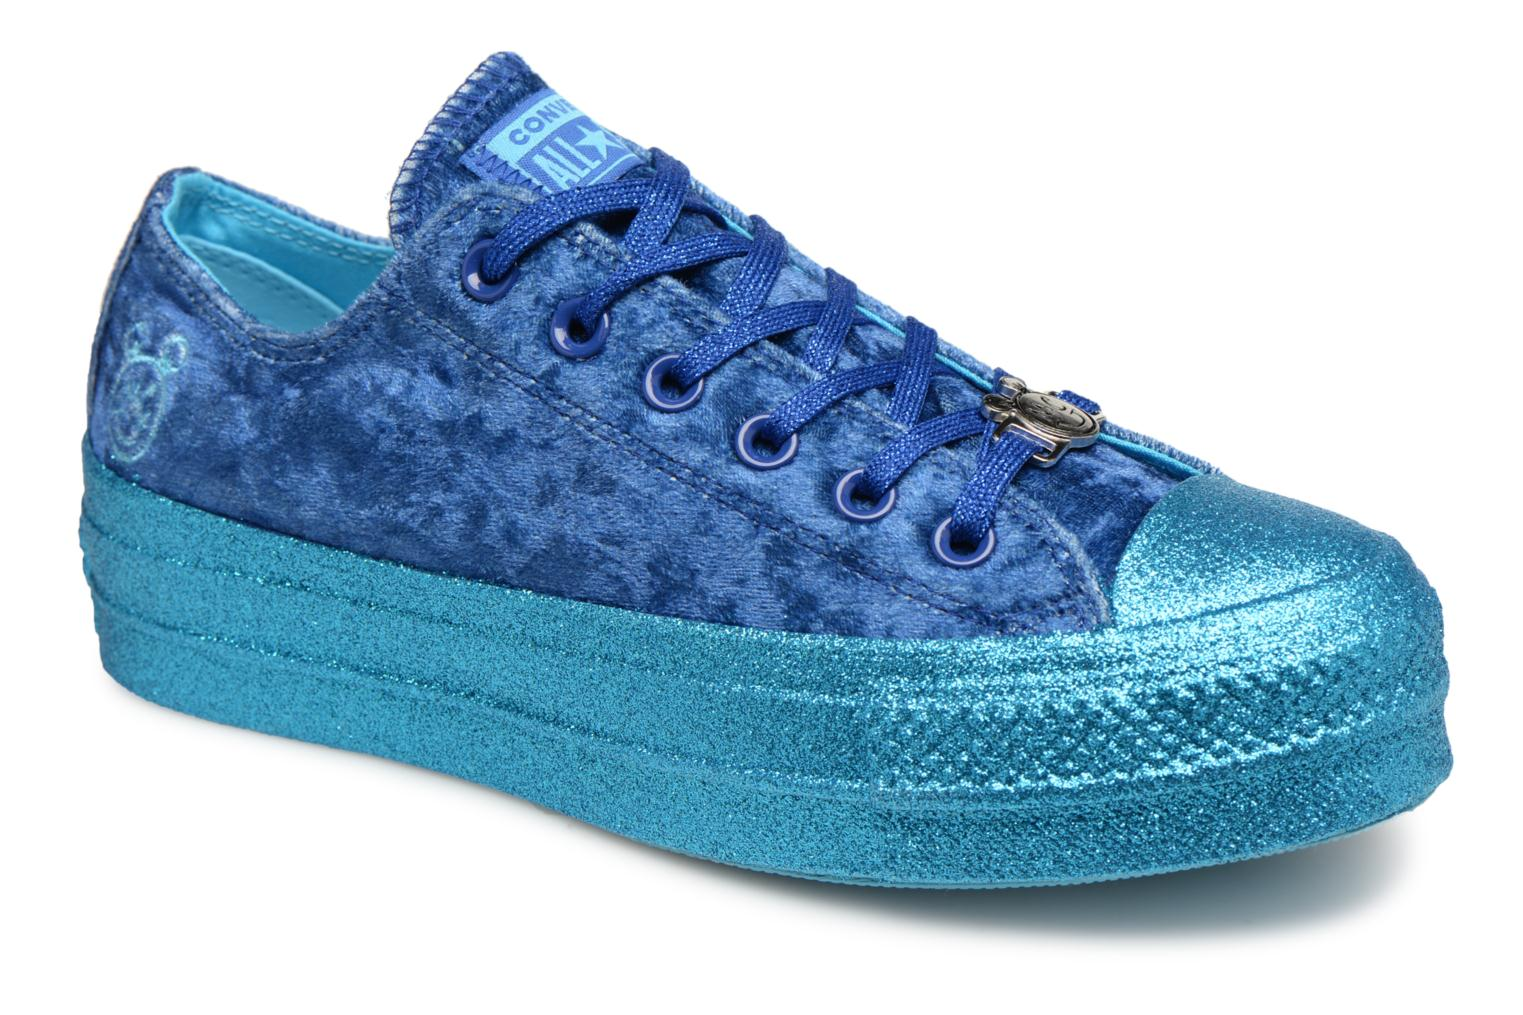 Sneakers Chuck Taylor All Star Lift Ox Miley Cyrus by ConverseConverseBlauwPaar schoenen - Sneakers88875627908236Synthetisch materiaal